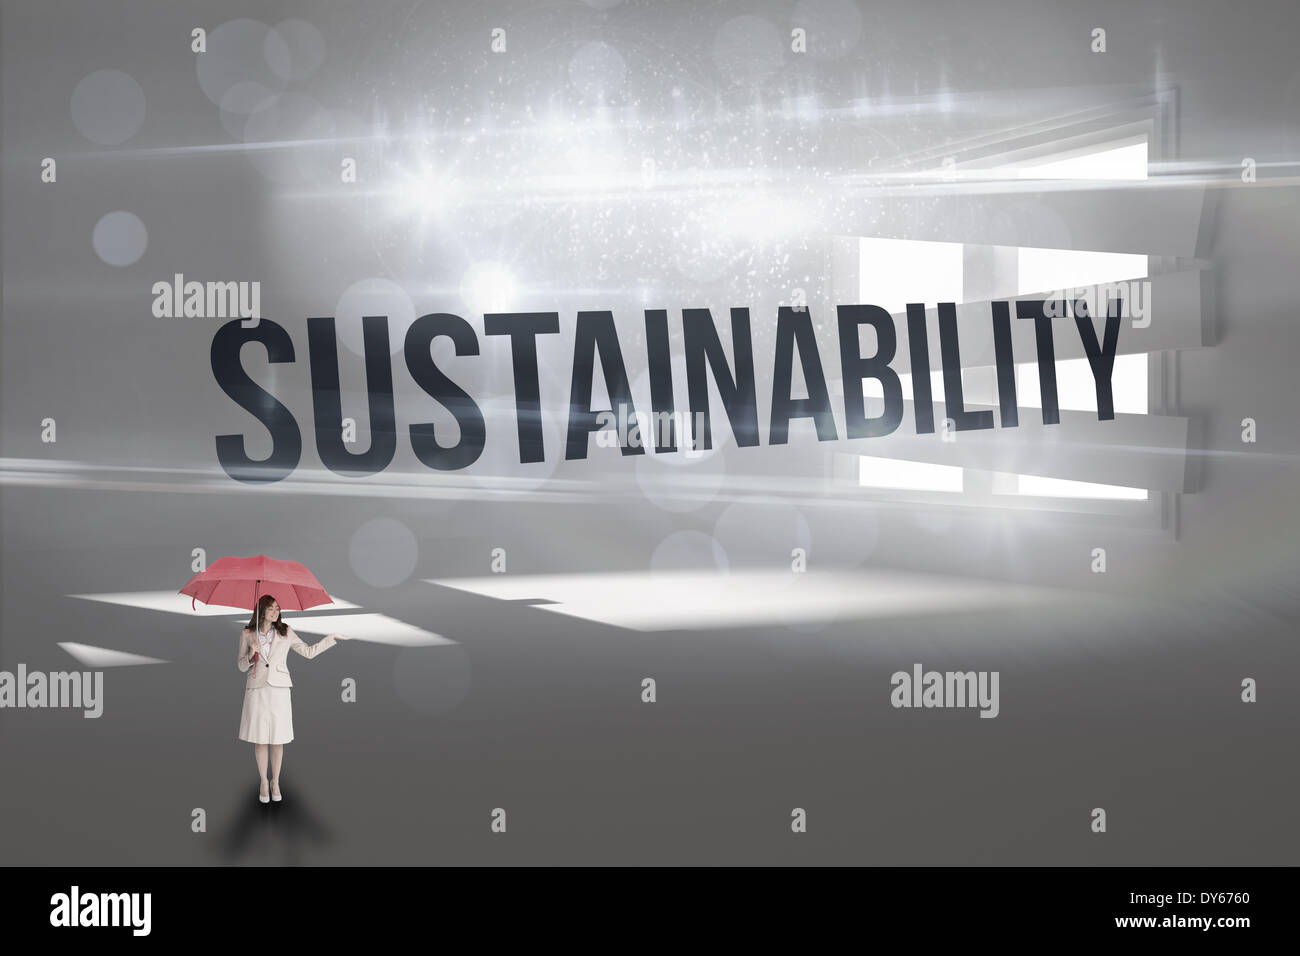 Sustainability against digitally generated room with bordered up window - Stock Image